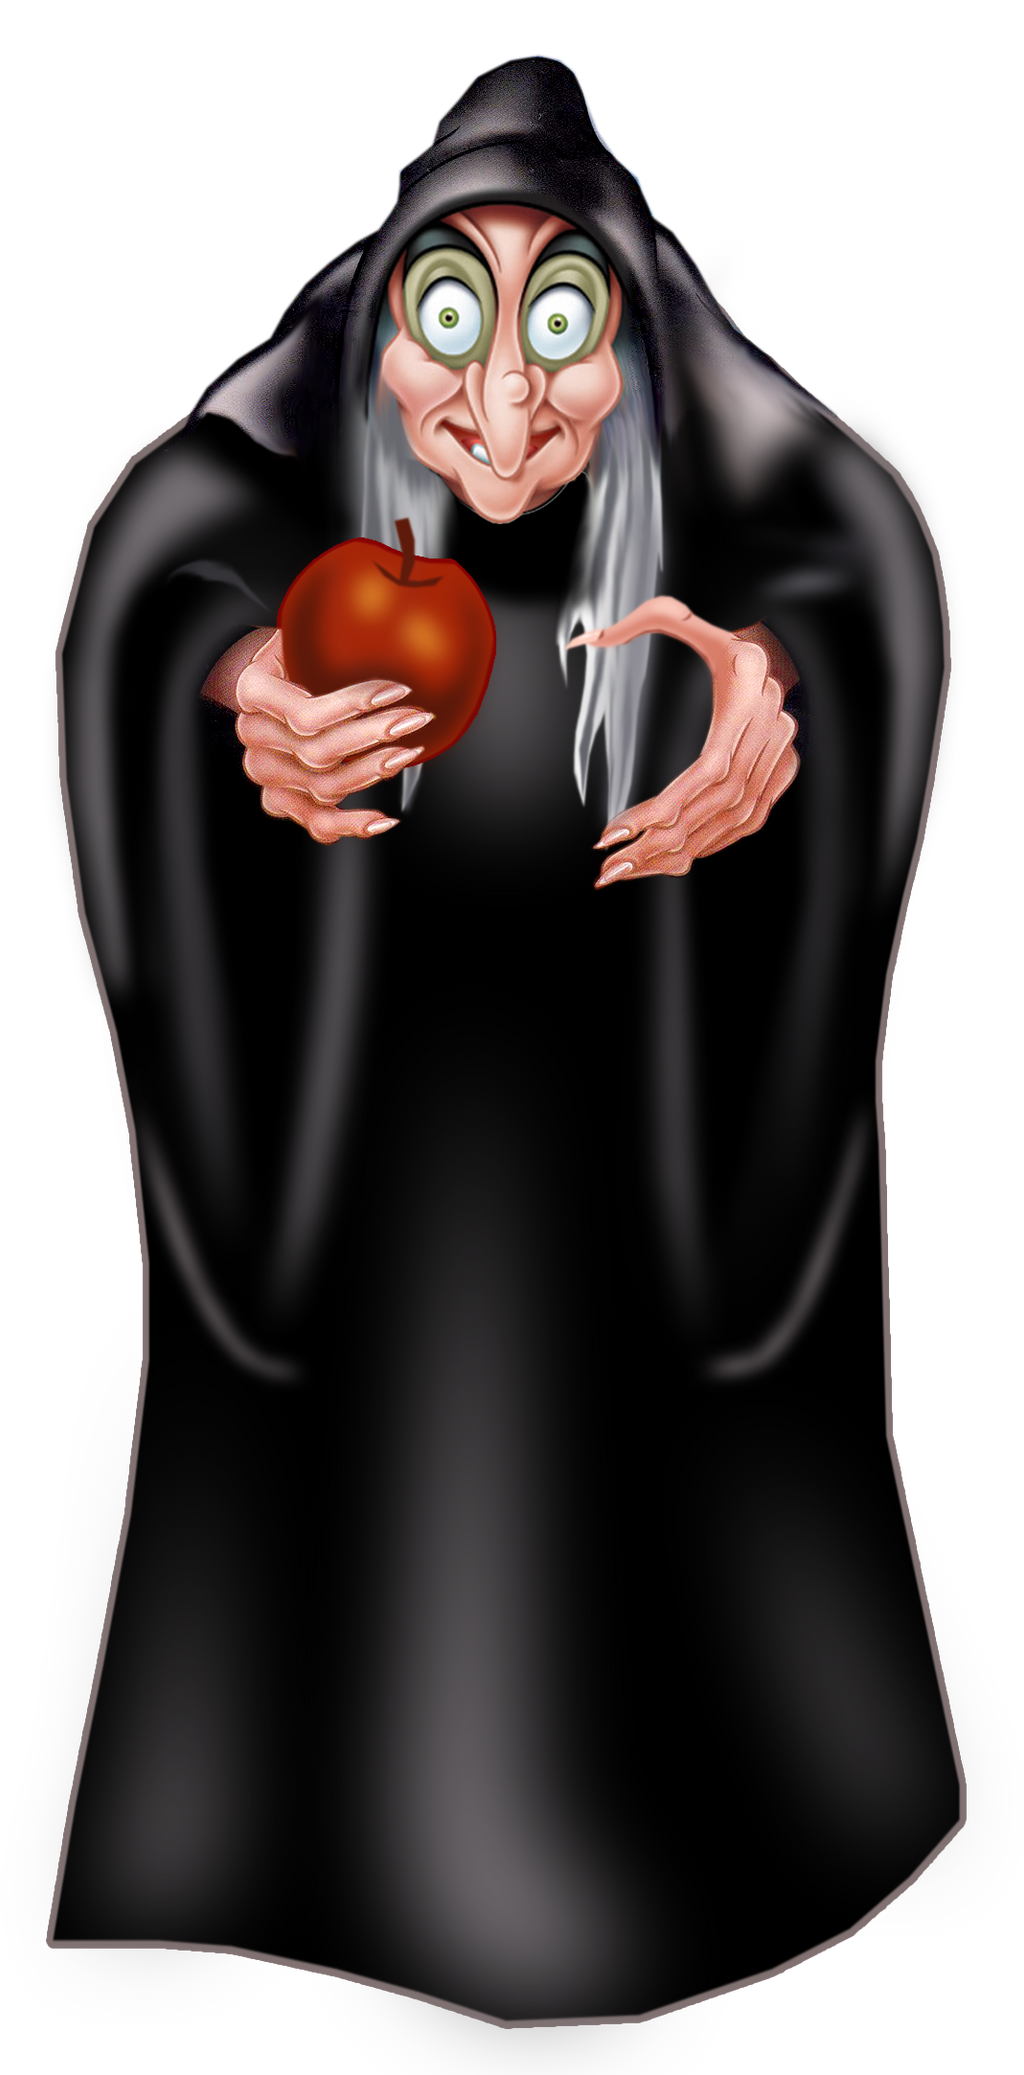 hag clipart by disneyfreak19 on deviantart apple core clipart black and white Apple Core Graphics